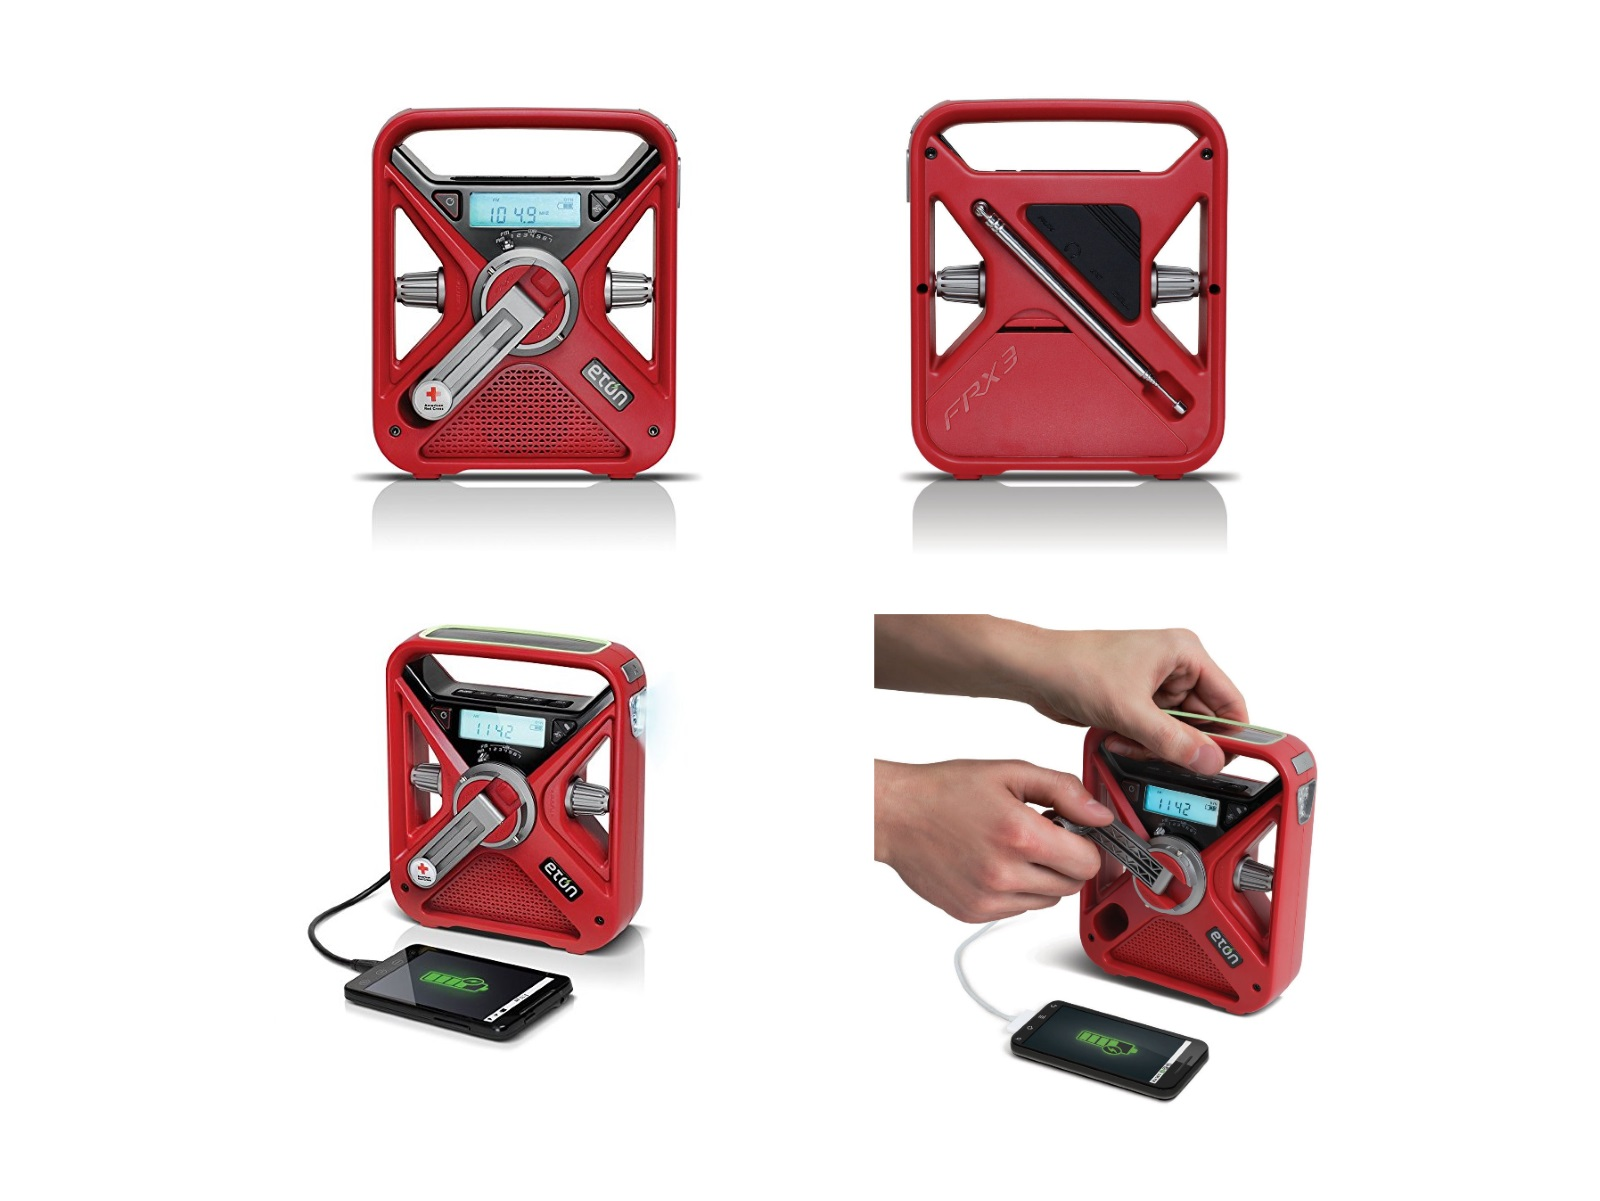 10 solar powered USB chargers and accessories